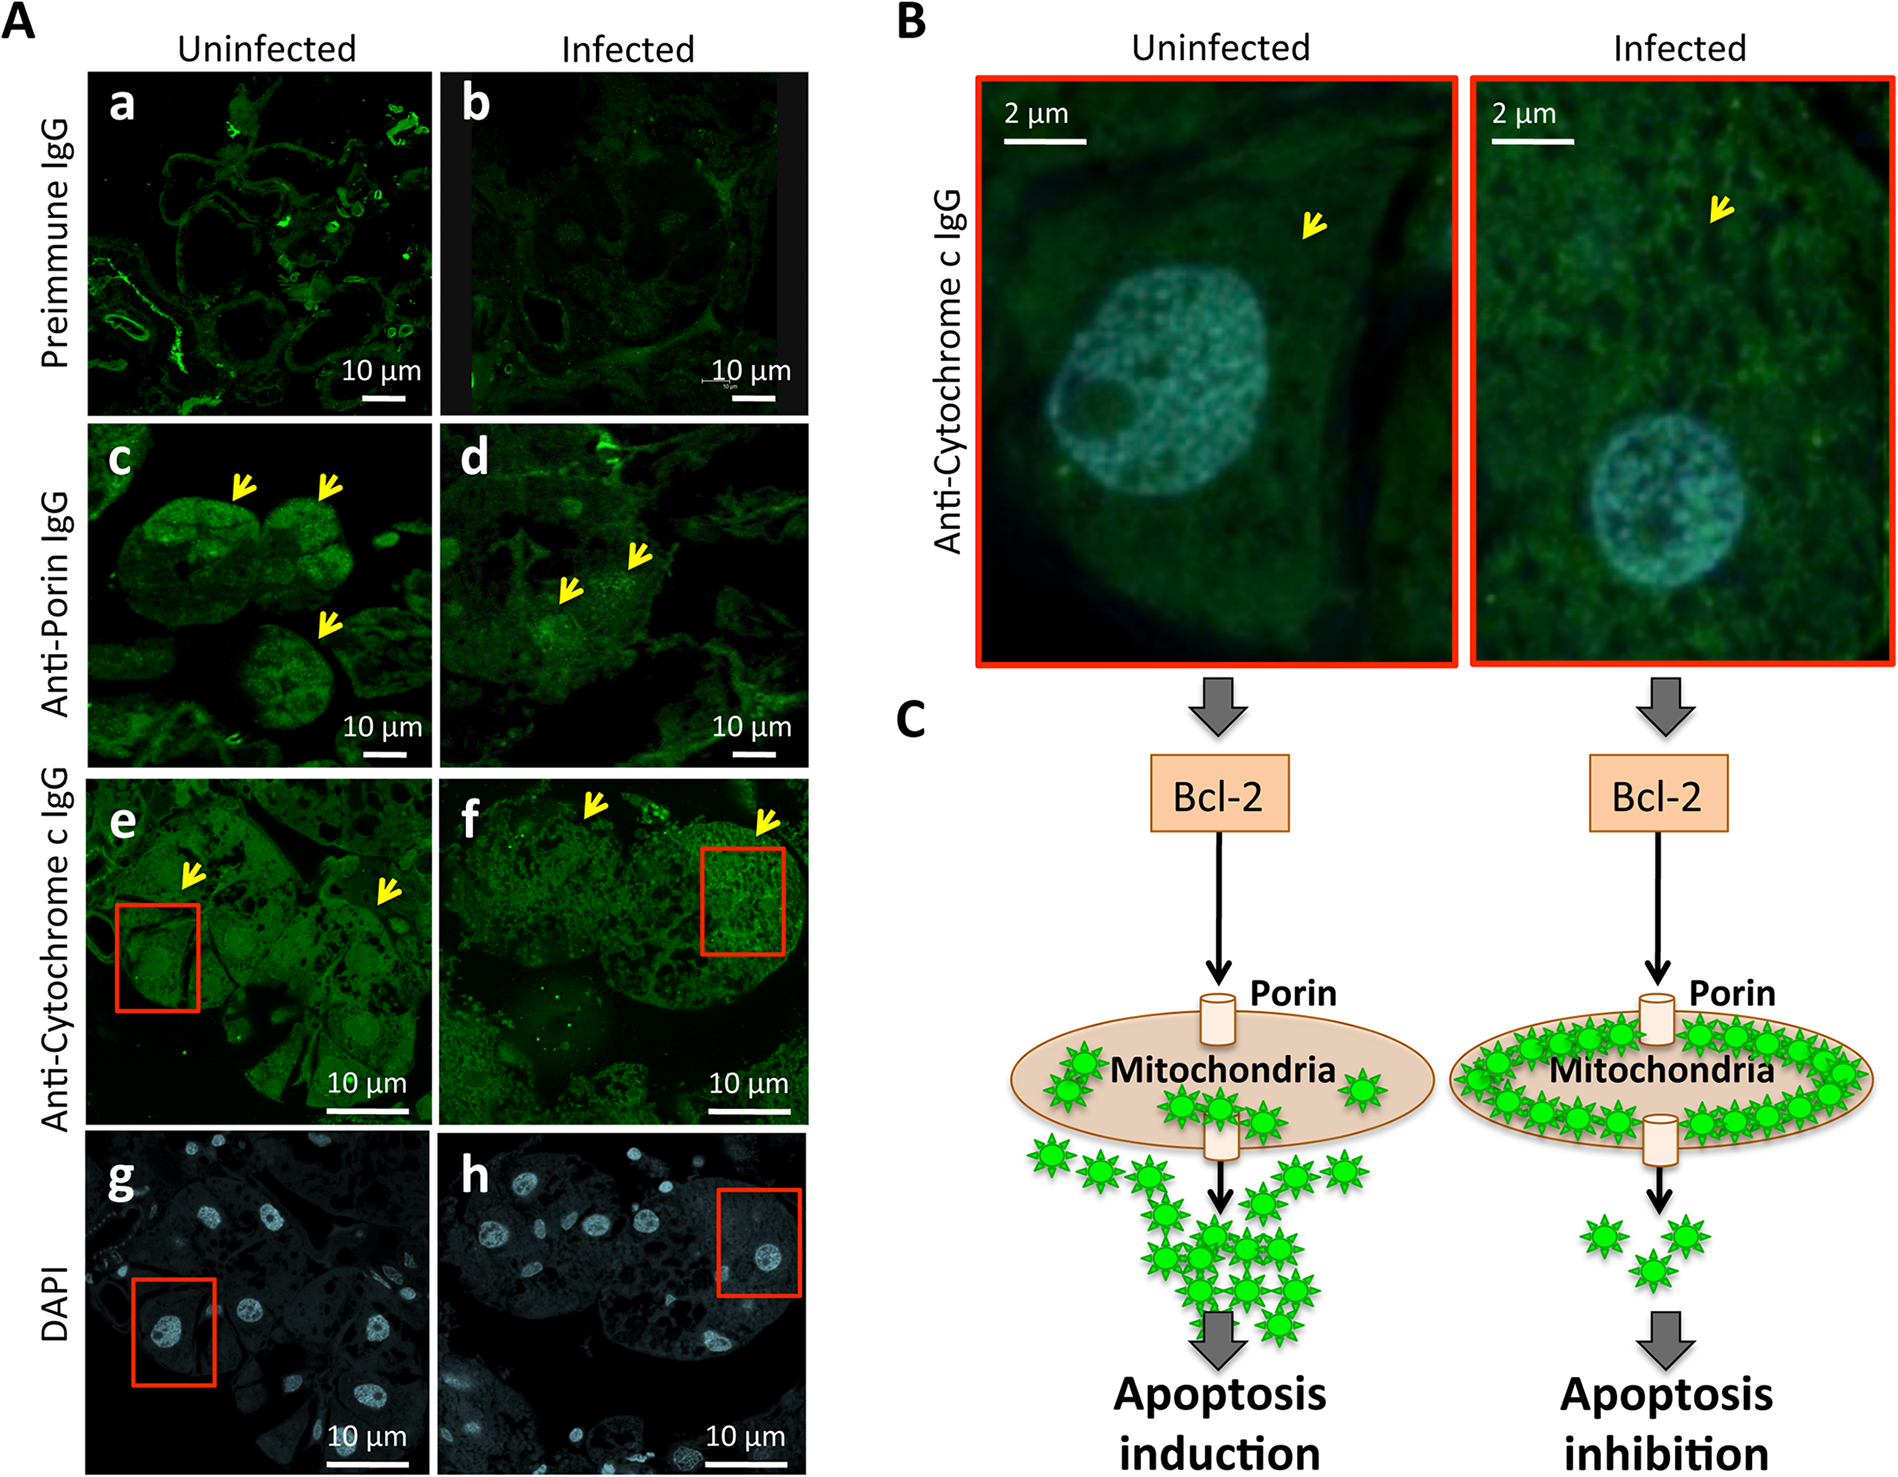 Immunohistochemical localization of tick Porin and Cytochrome c.